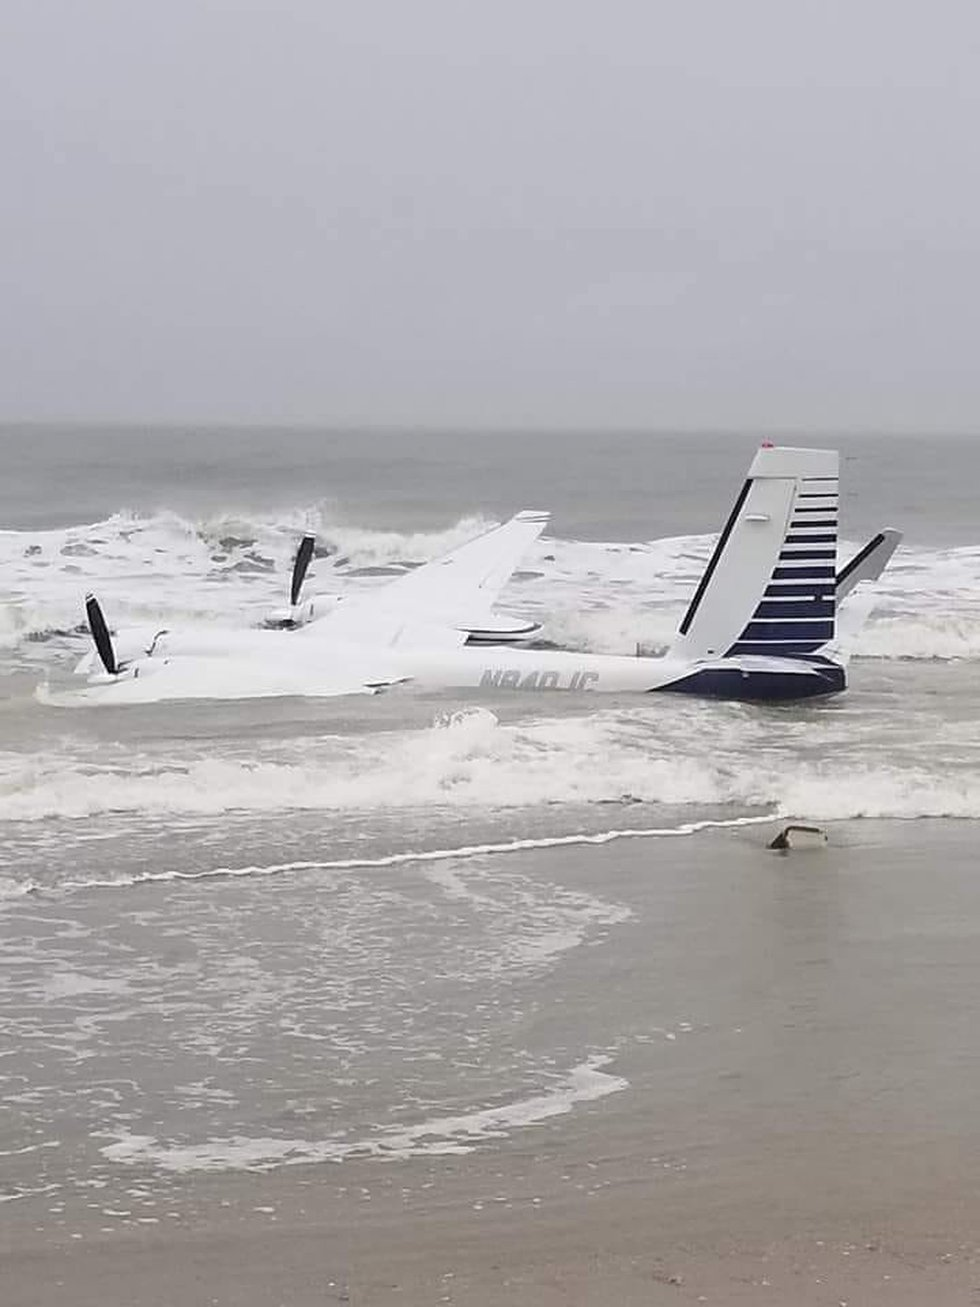 A plane landed in the water Monday near Springmaid Pier in Myrtle Beach. (Source: Dave Crow via...